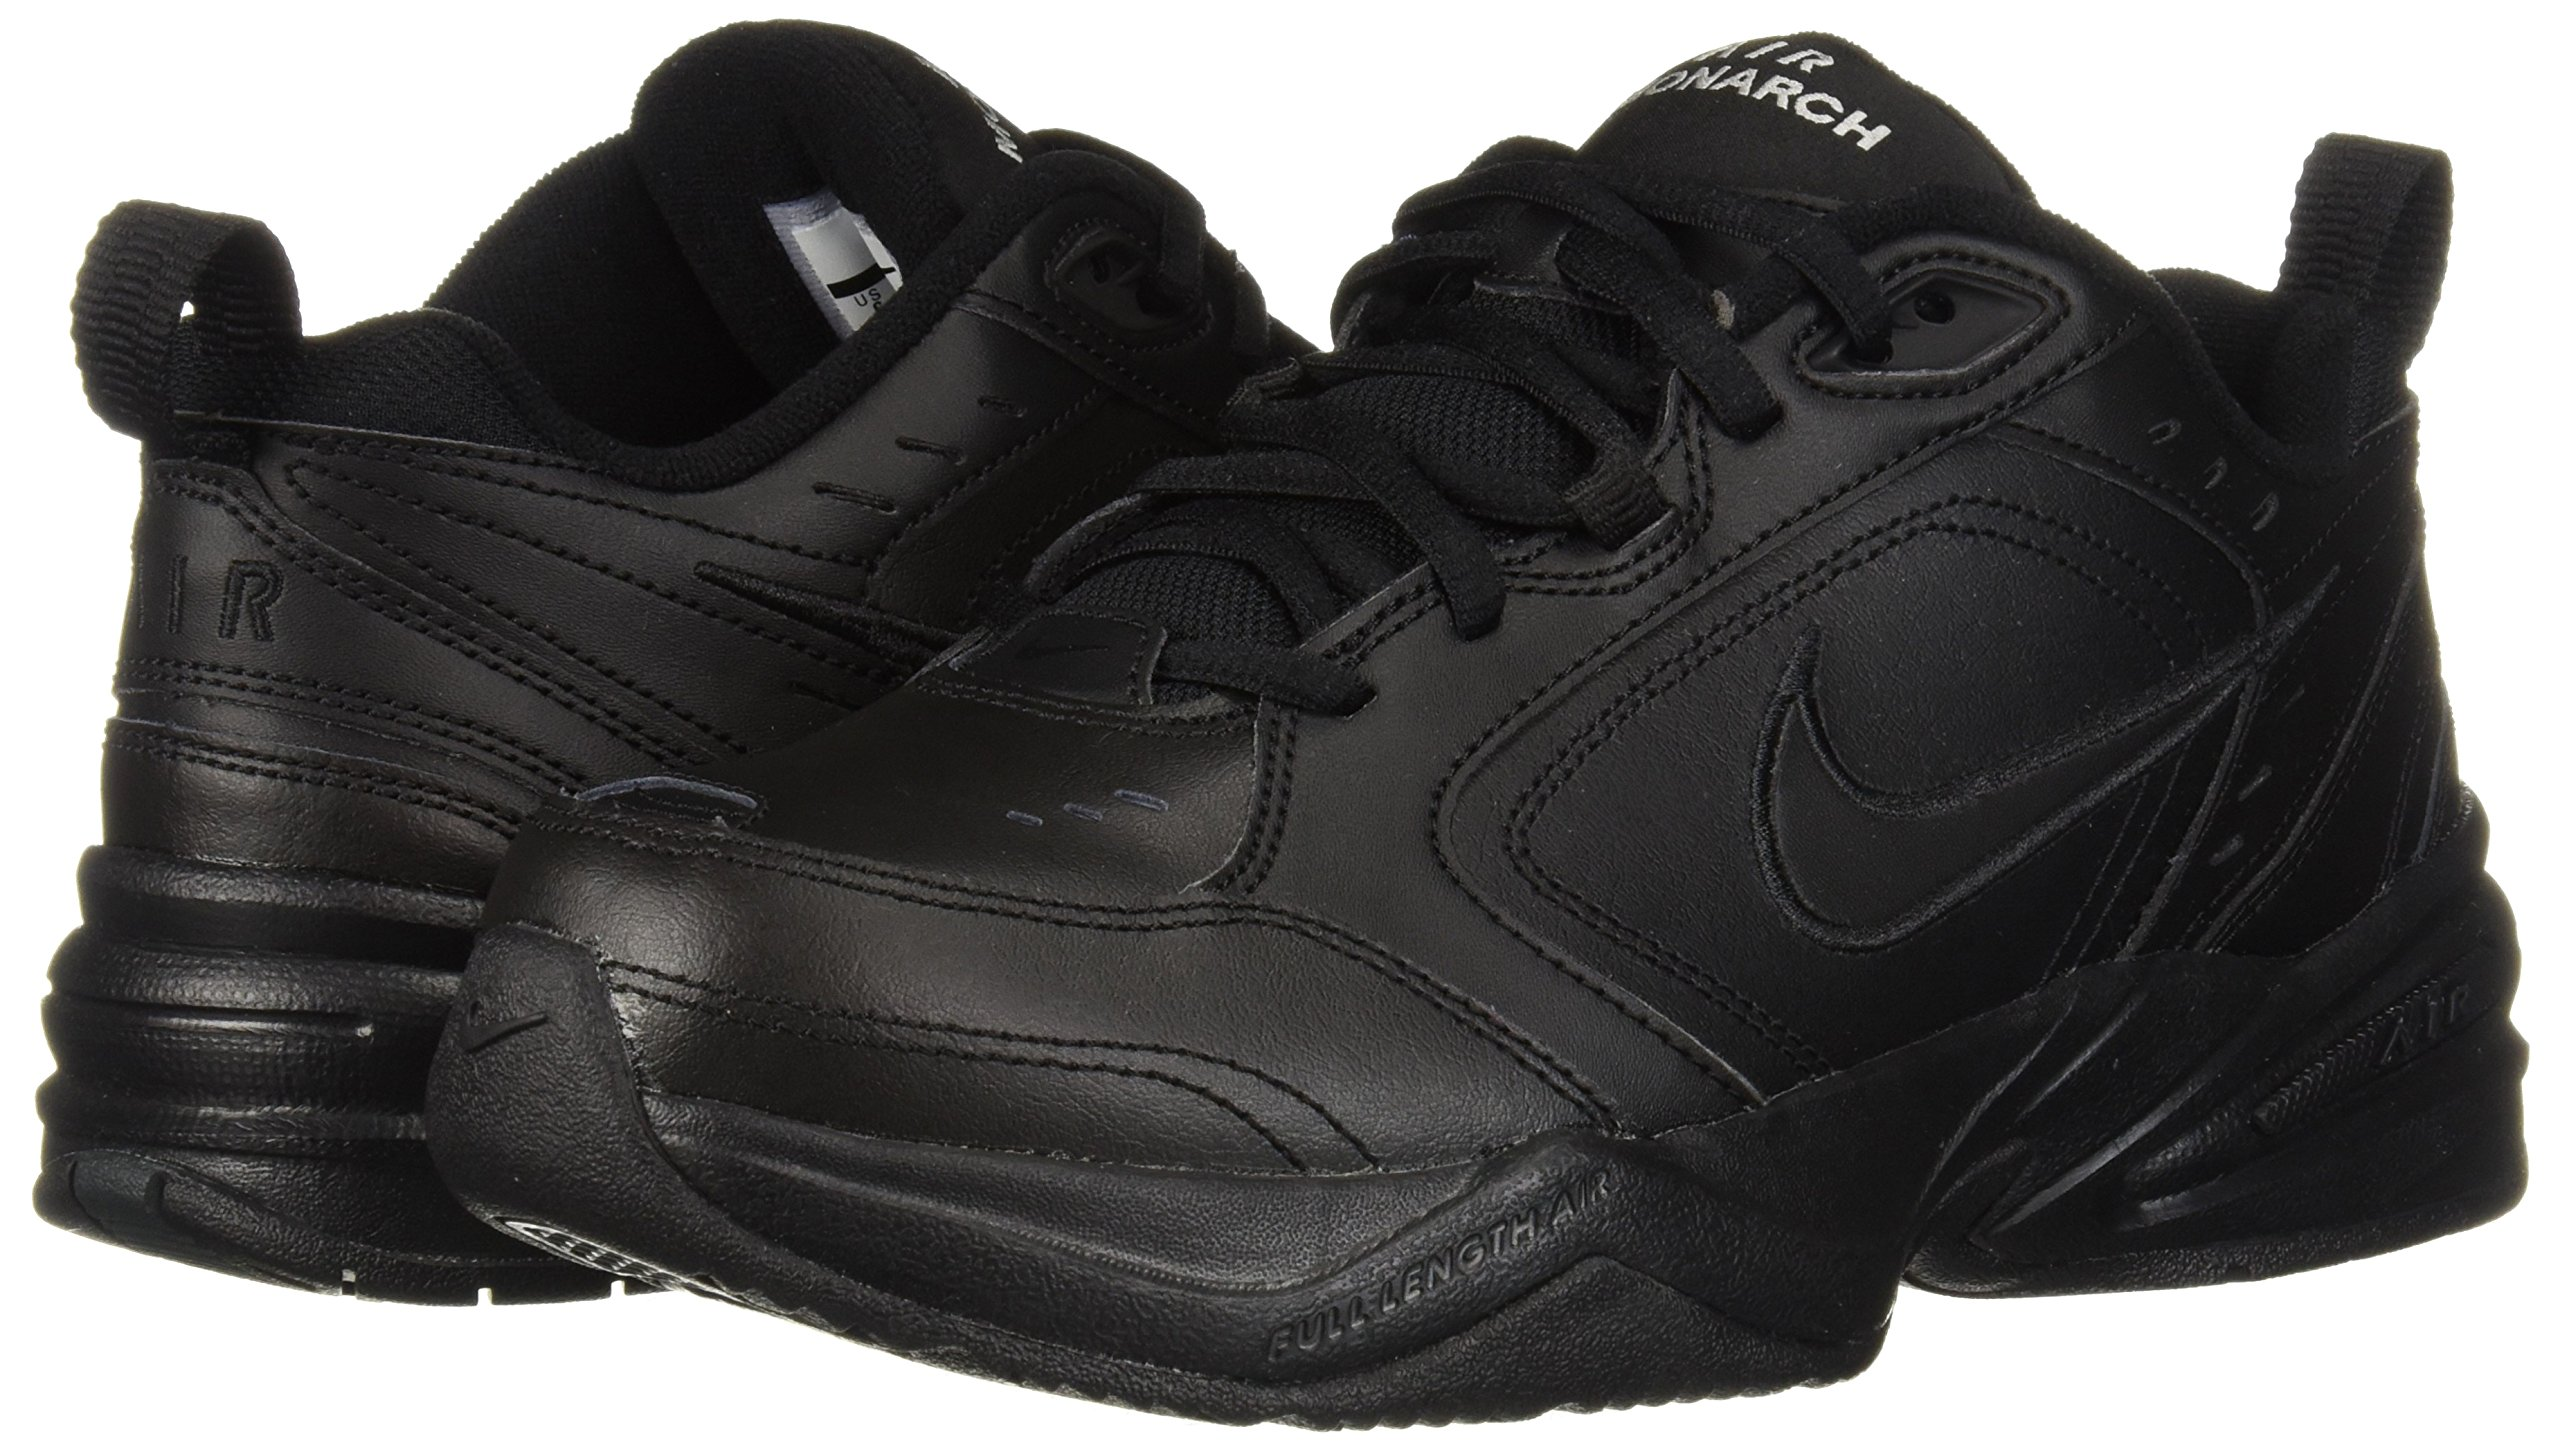 Nike Men's Air Monarch IV Cross Trainer, Black, 7.5 4E US by Nike (Image #6)